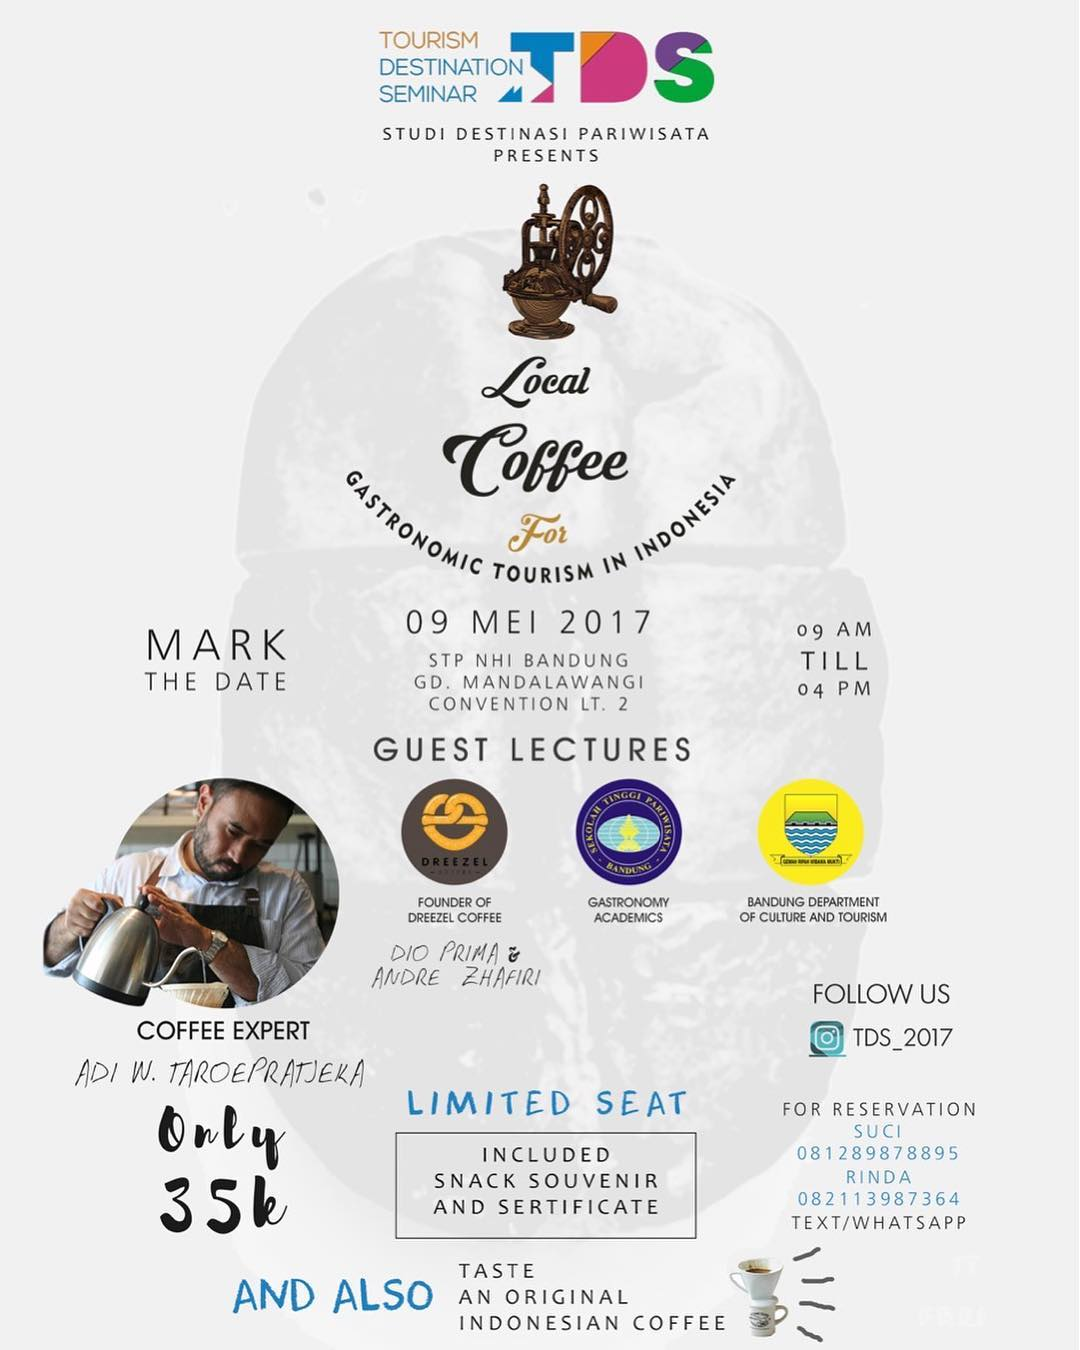 "Tourism Destination Seminar ""Local Coffee For Gastronomic Tourism in Indonesia"" - STP NHI Bandung, 9 Mei 2017"